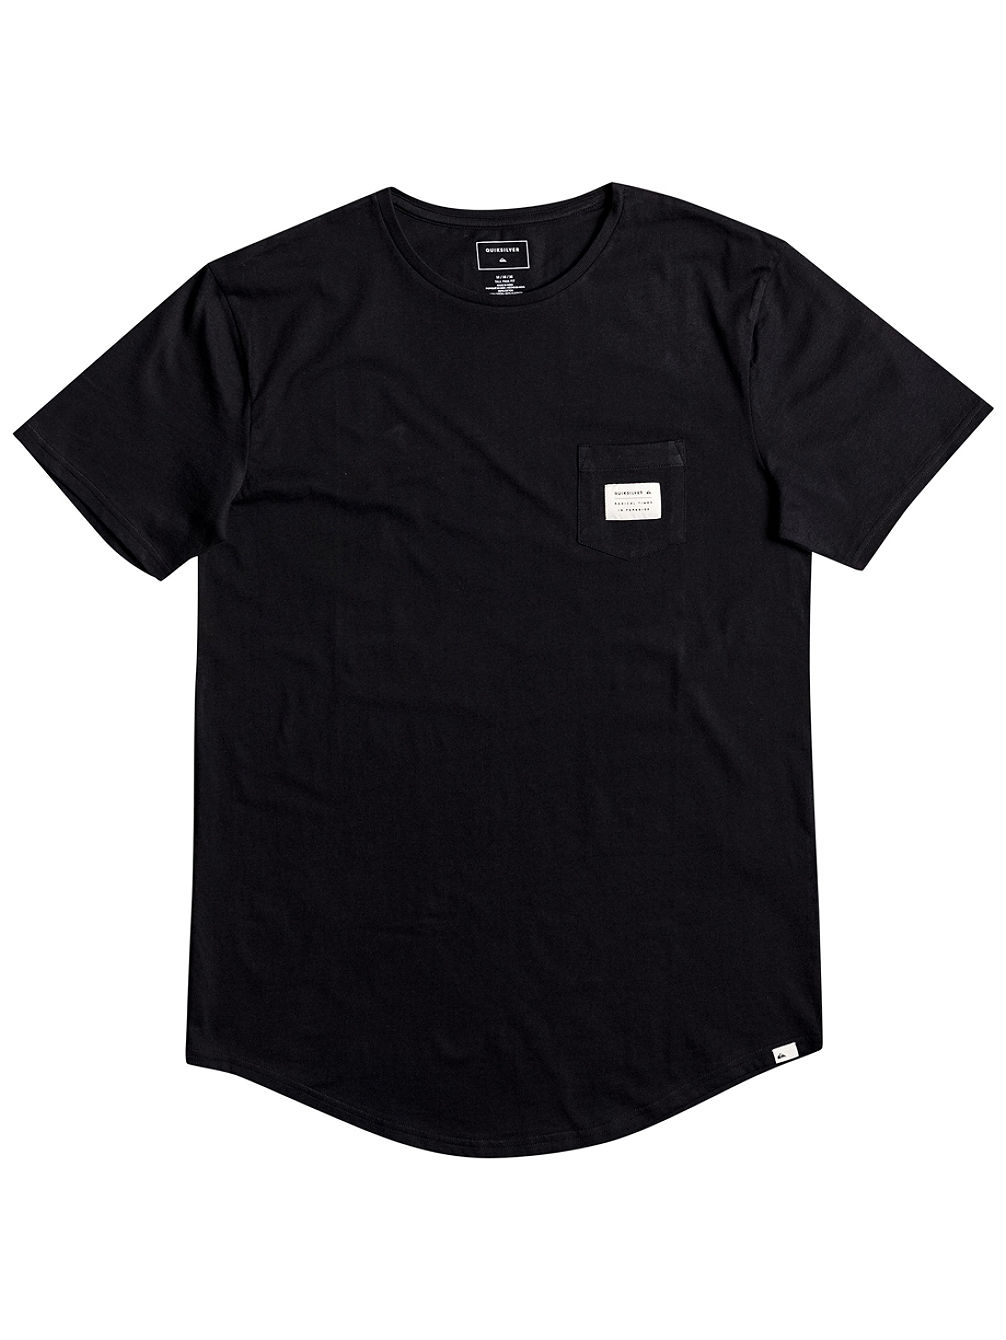 Scallop East Woven Pocket T-Shirt